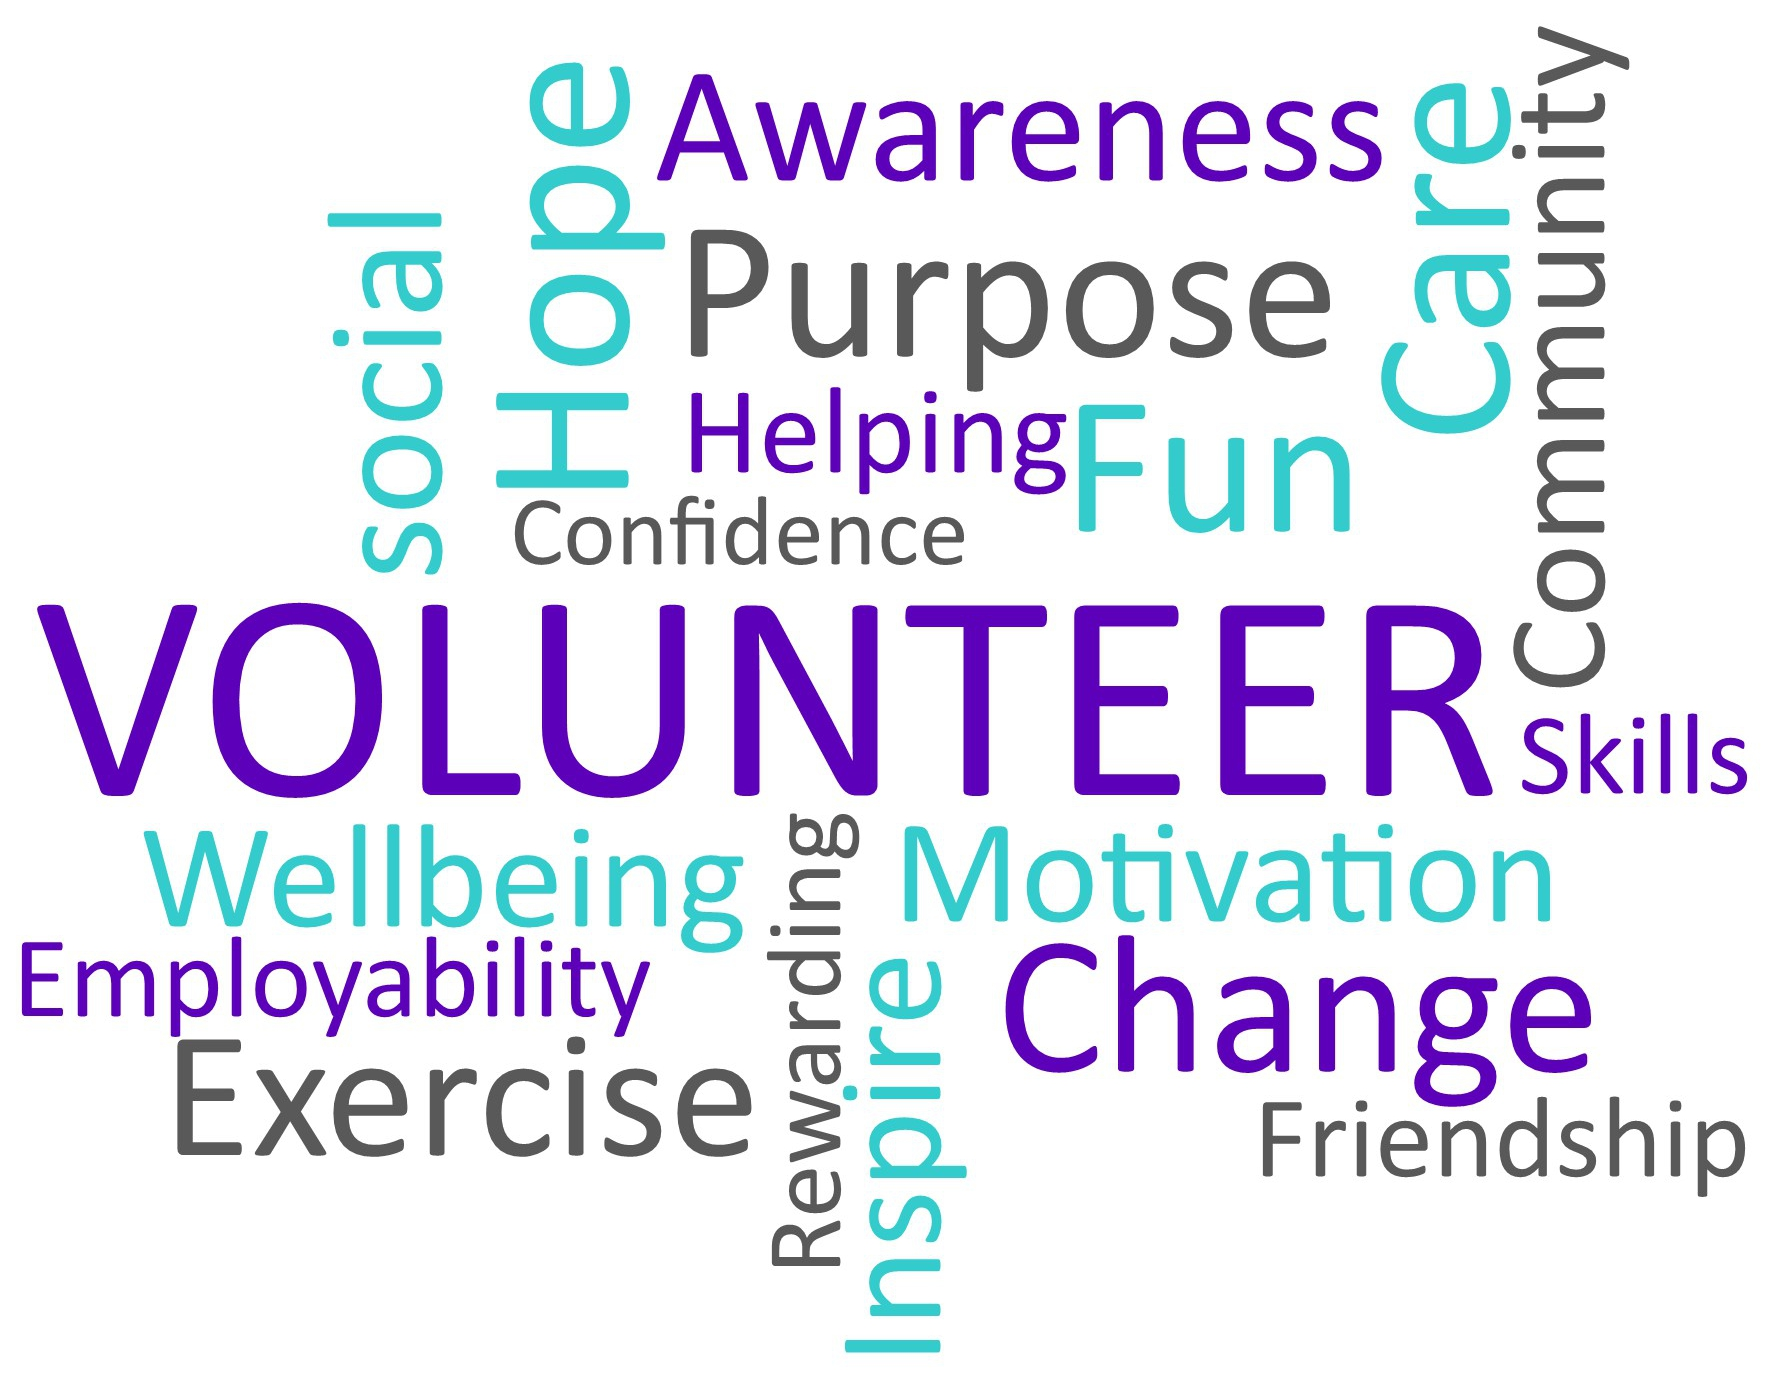 As part of the National Volunteers' Week, FND Action are looking to recruit Area Coordinators (voluntary) across the UK. Do you want to be part of furthering the cause in your area?